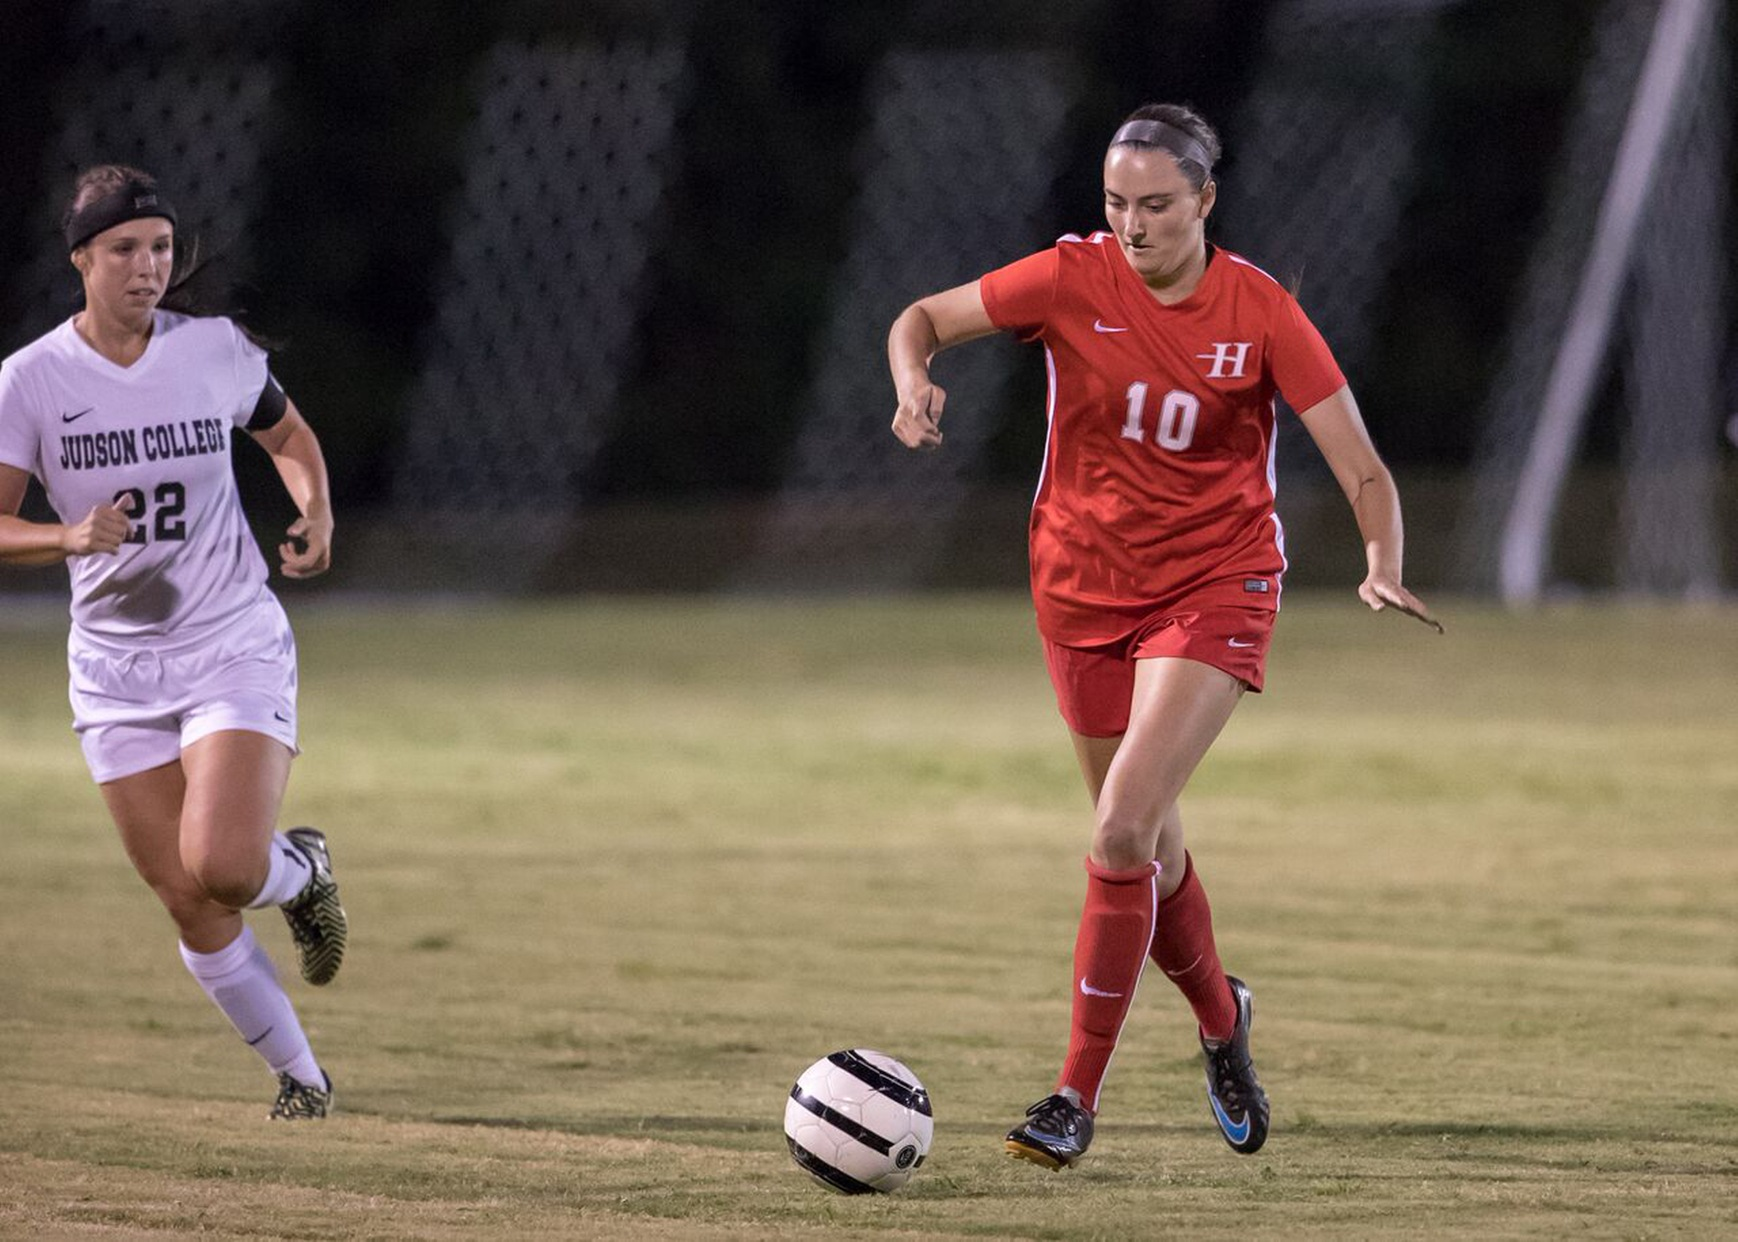 Shelby Clark scored Huntingdon's goal in a 1-1 double overtime tie at Wesleyan on Saturday. (Photo by Lisa Pearson)